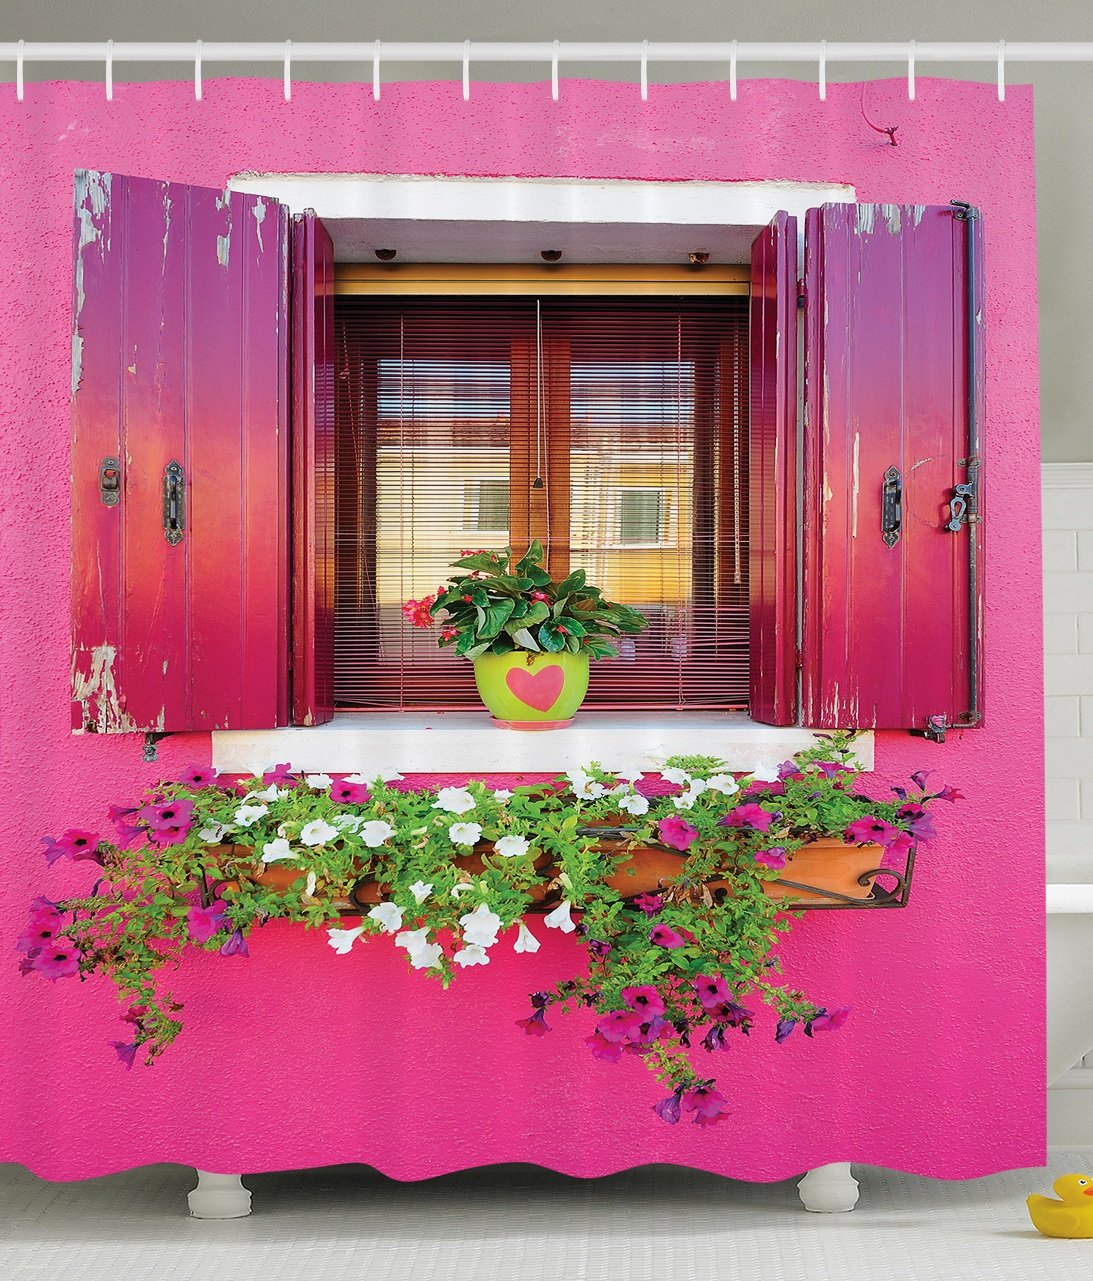 Pink Shower Curtain Dreams Romantic Atmosphere Decor Lovers House Wooden Windows Hearts Flowers Bougainvilleas Fantastic Bathroom Decorations Digital Printed Photo Print Fabric Fuchsia Green White